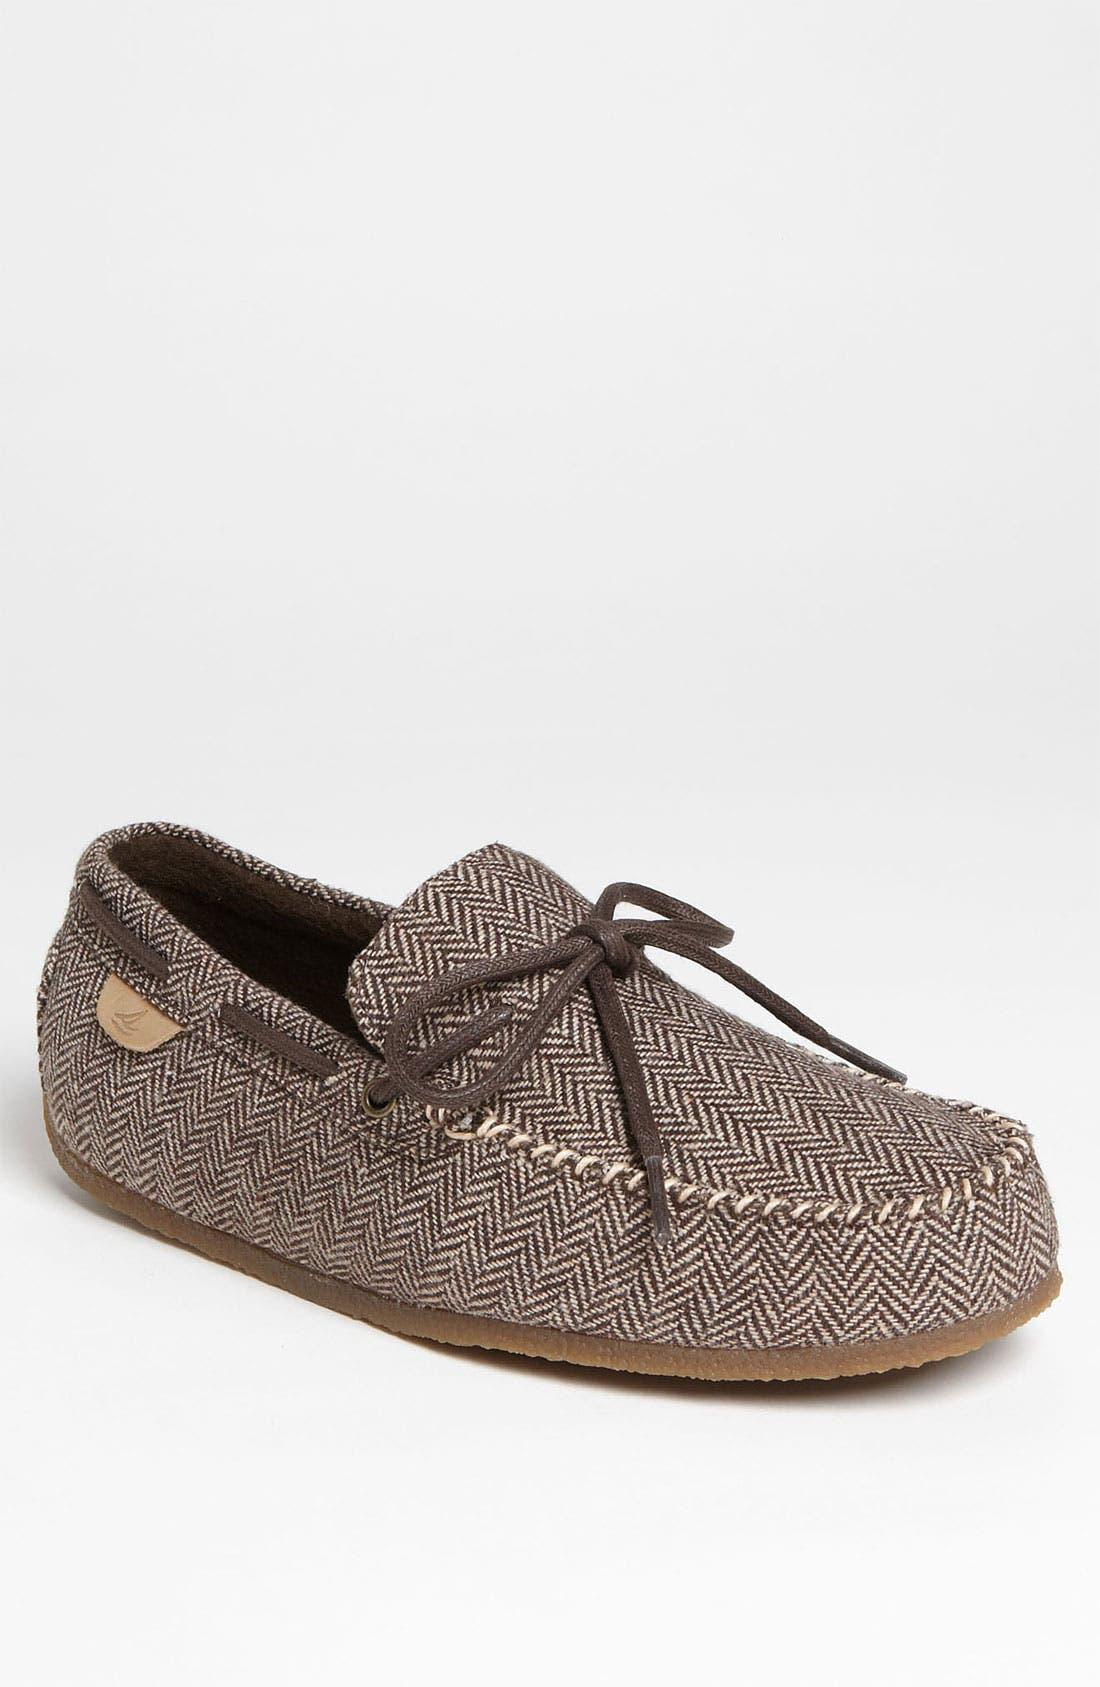 Alternate Image 1 Selected - Sperry Top-Sider® 'R & R' Moc Toe Slipper